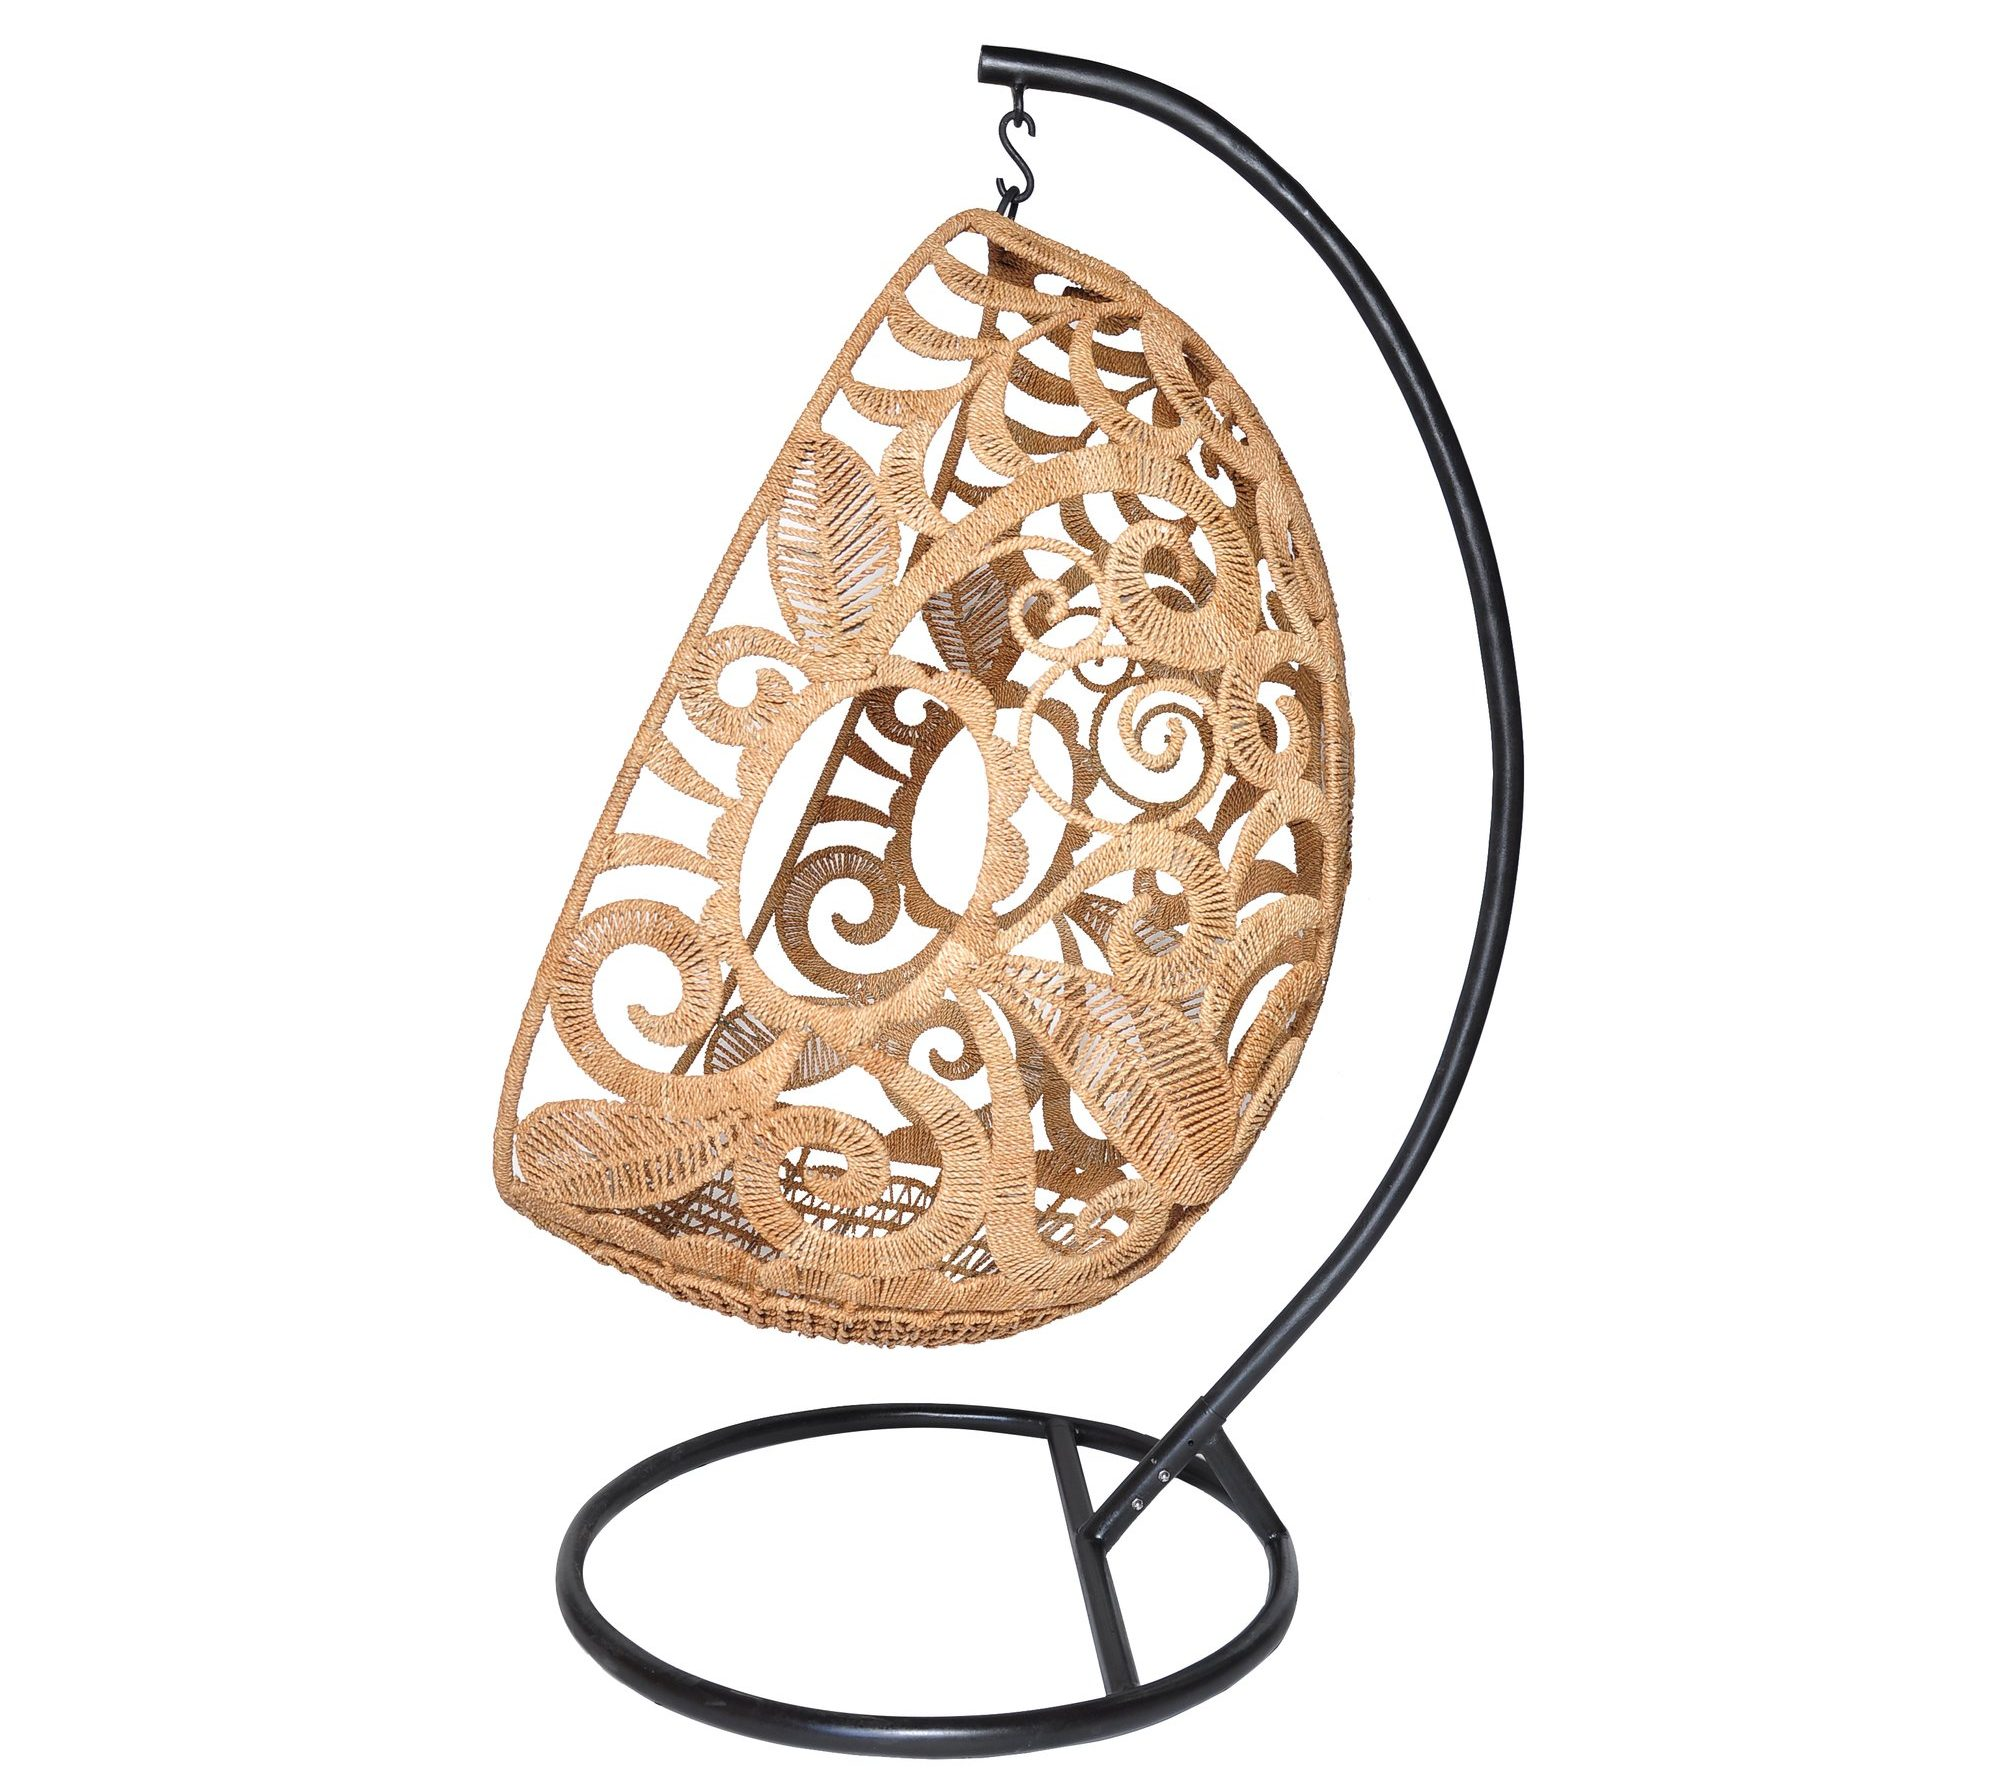 Hand-woven hanging egg swing with stand- by Jo Lisa